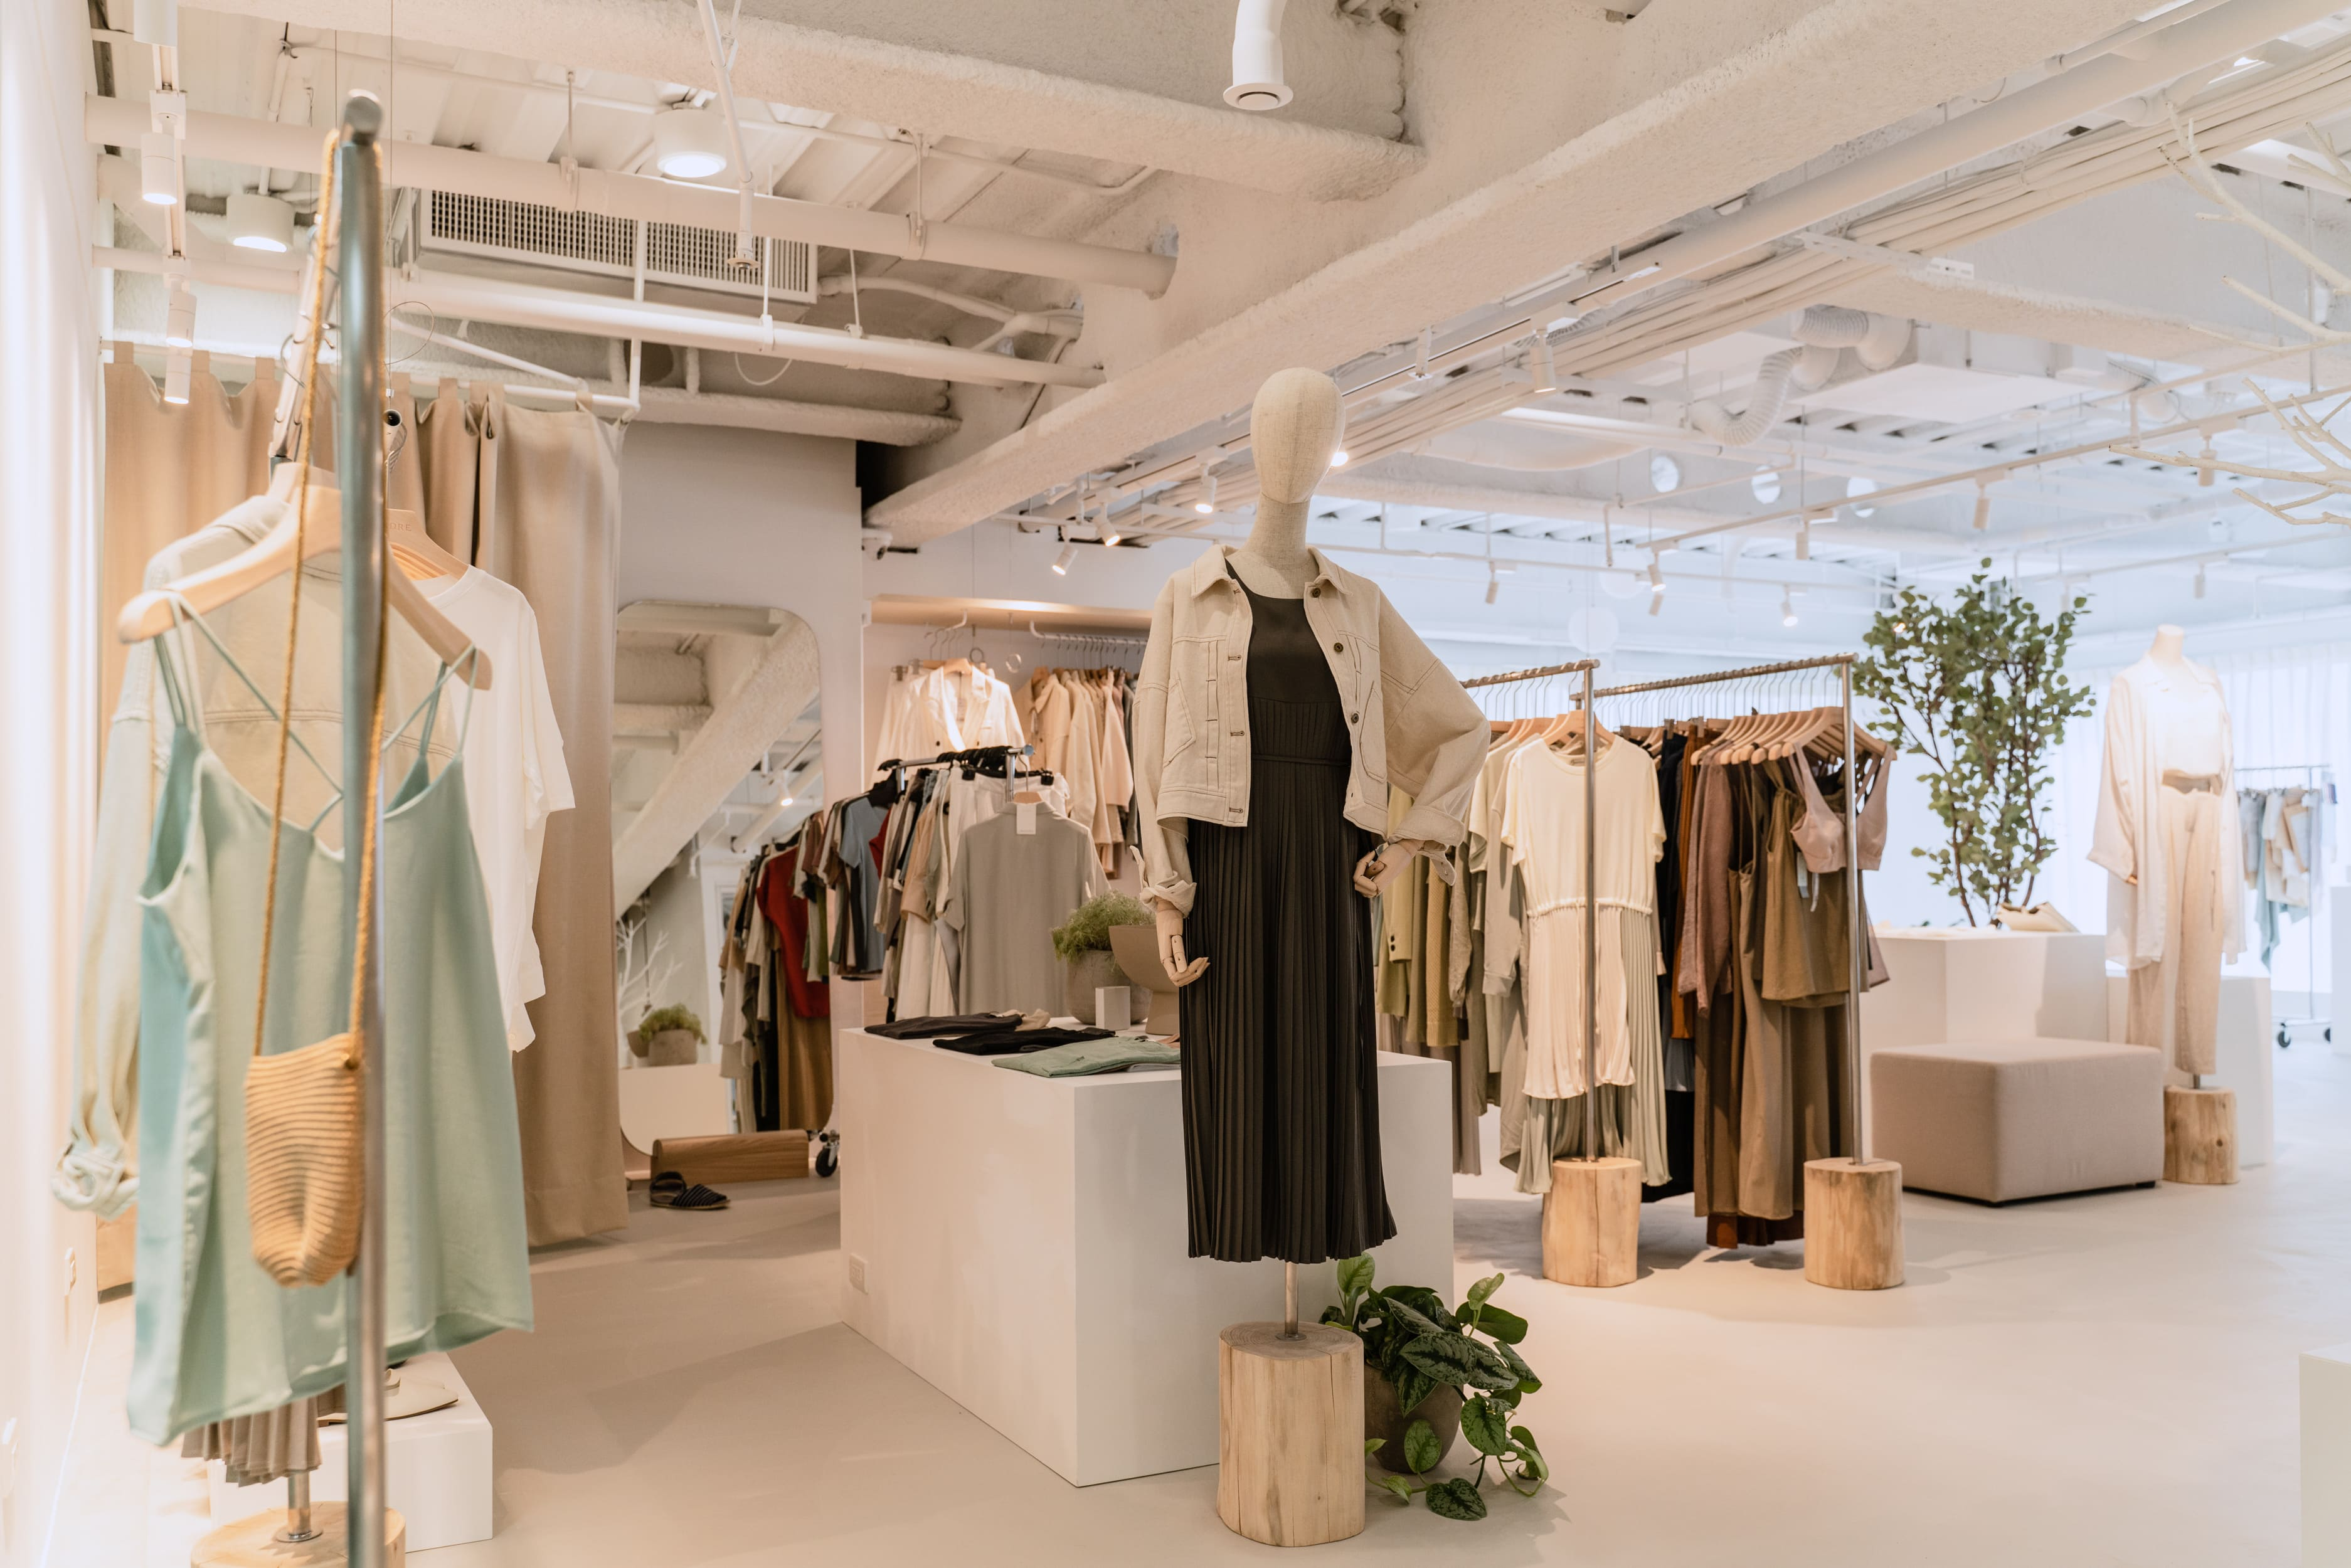 The Madre Showroom